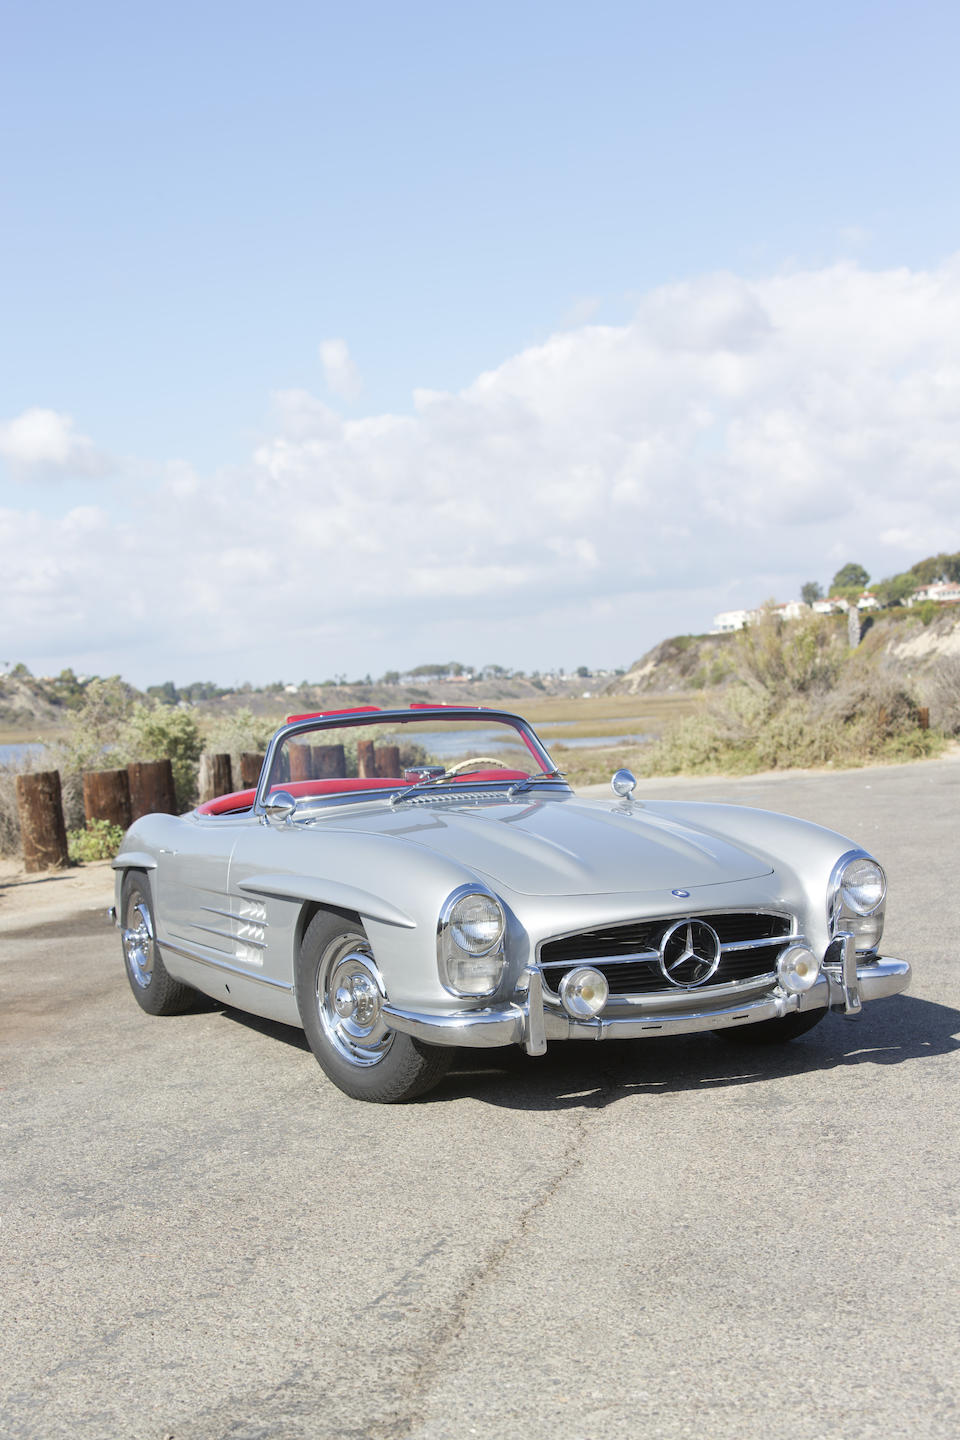 1958 Mercedes-Benz 300SL Roadster w/ hardtop  Chassis no. 198.042.8500094